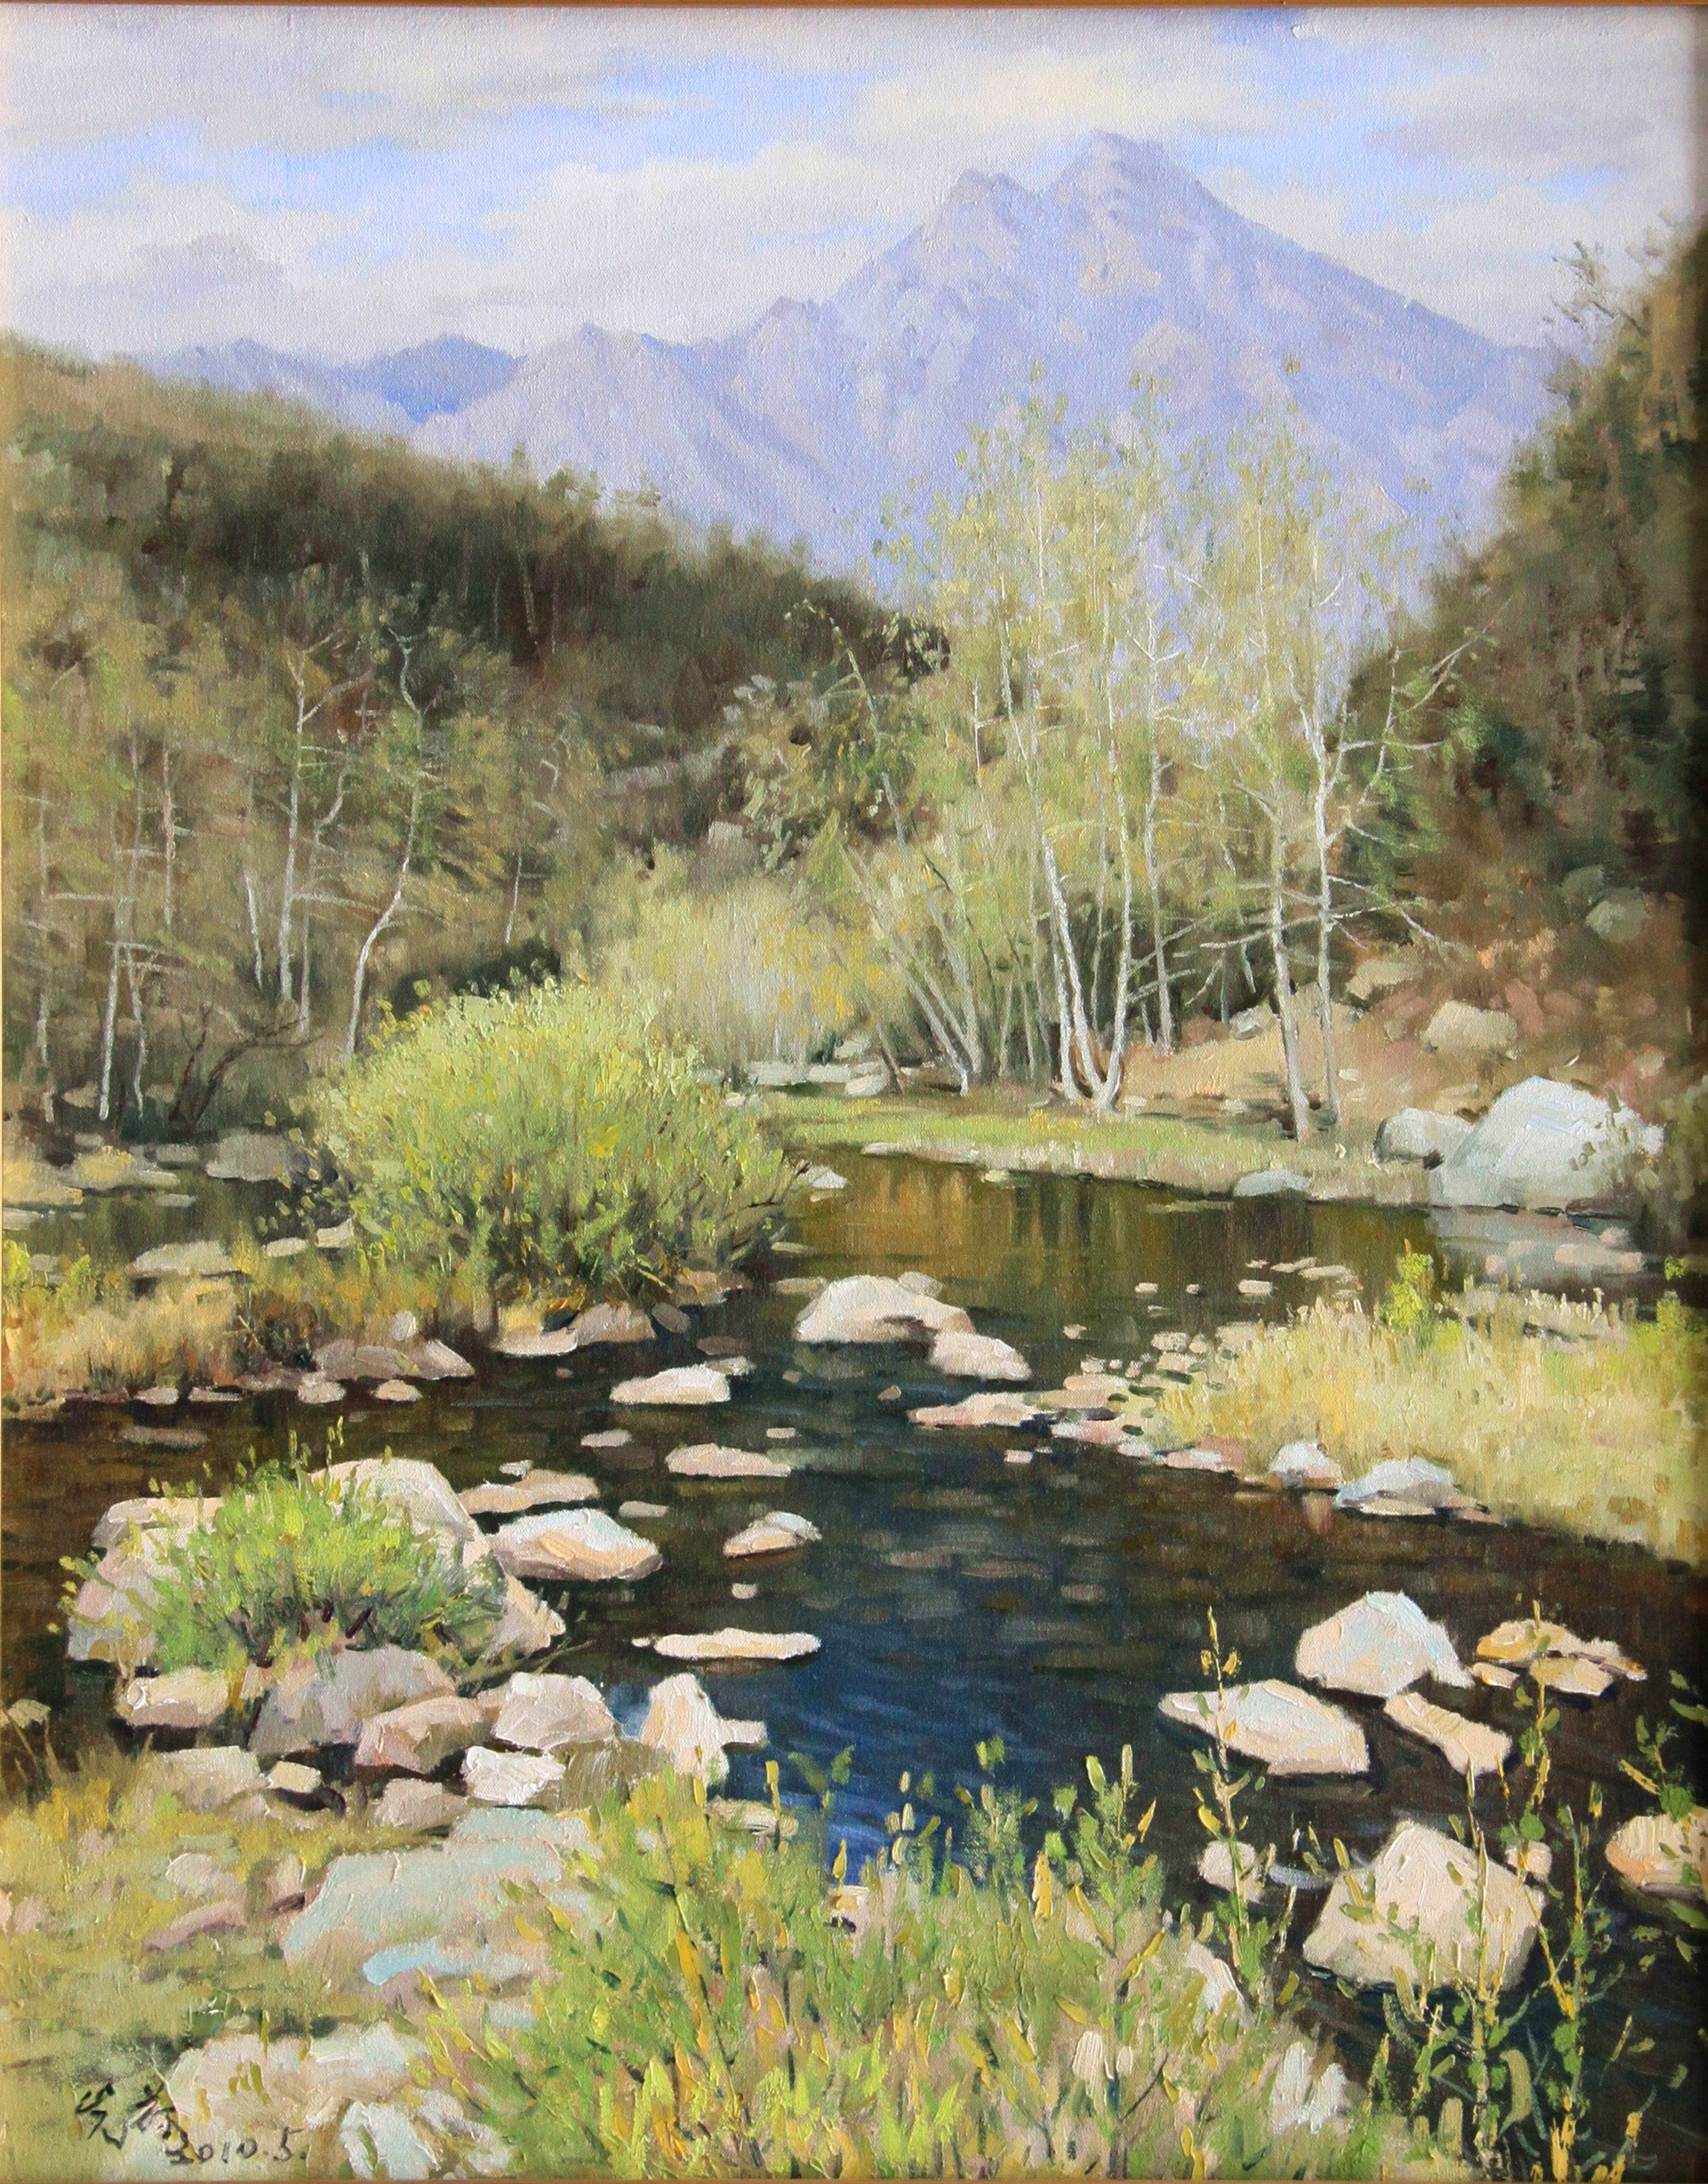 Another piece of painting about the scene of early summer